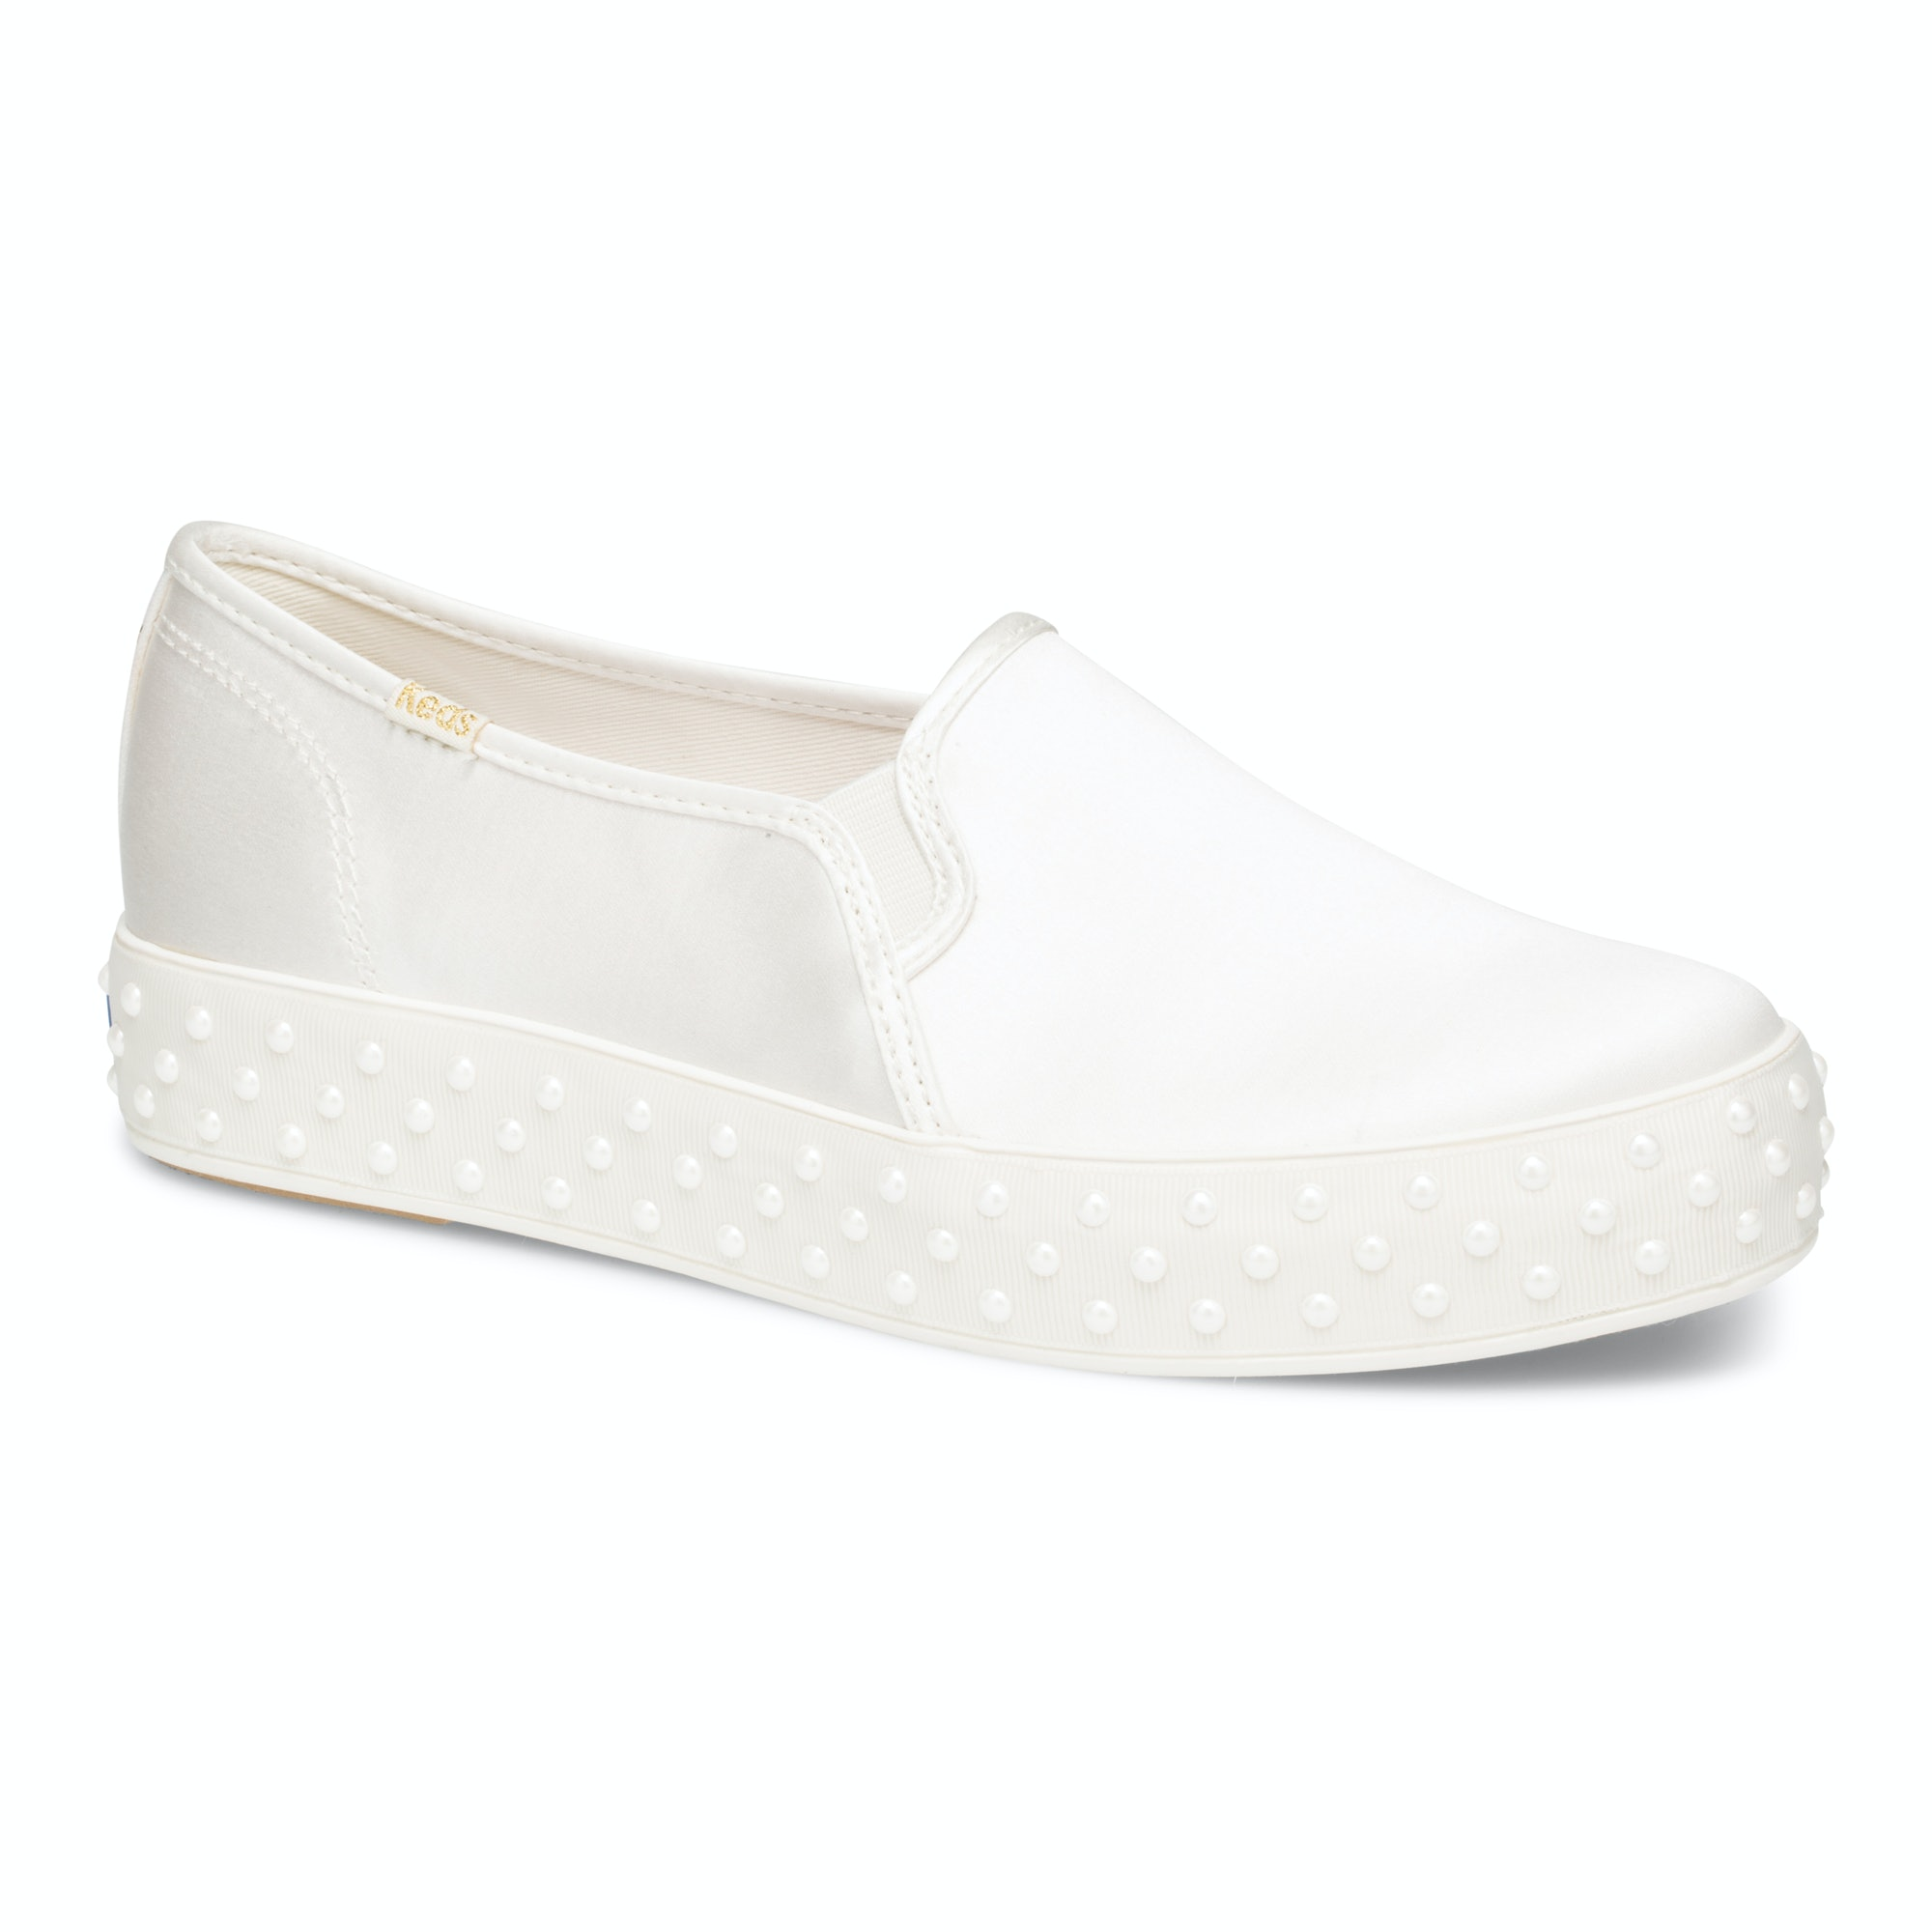 070f2d981 The Keds x Kate Spade New York Wedding Collection Is A Glittery Dream